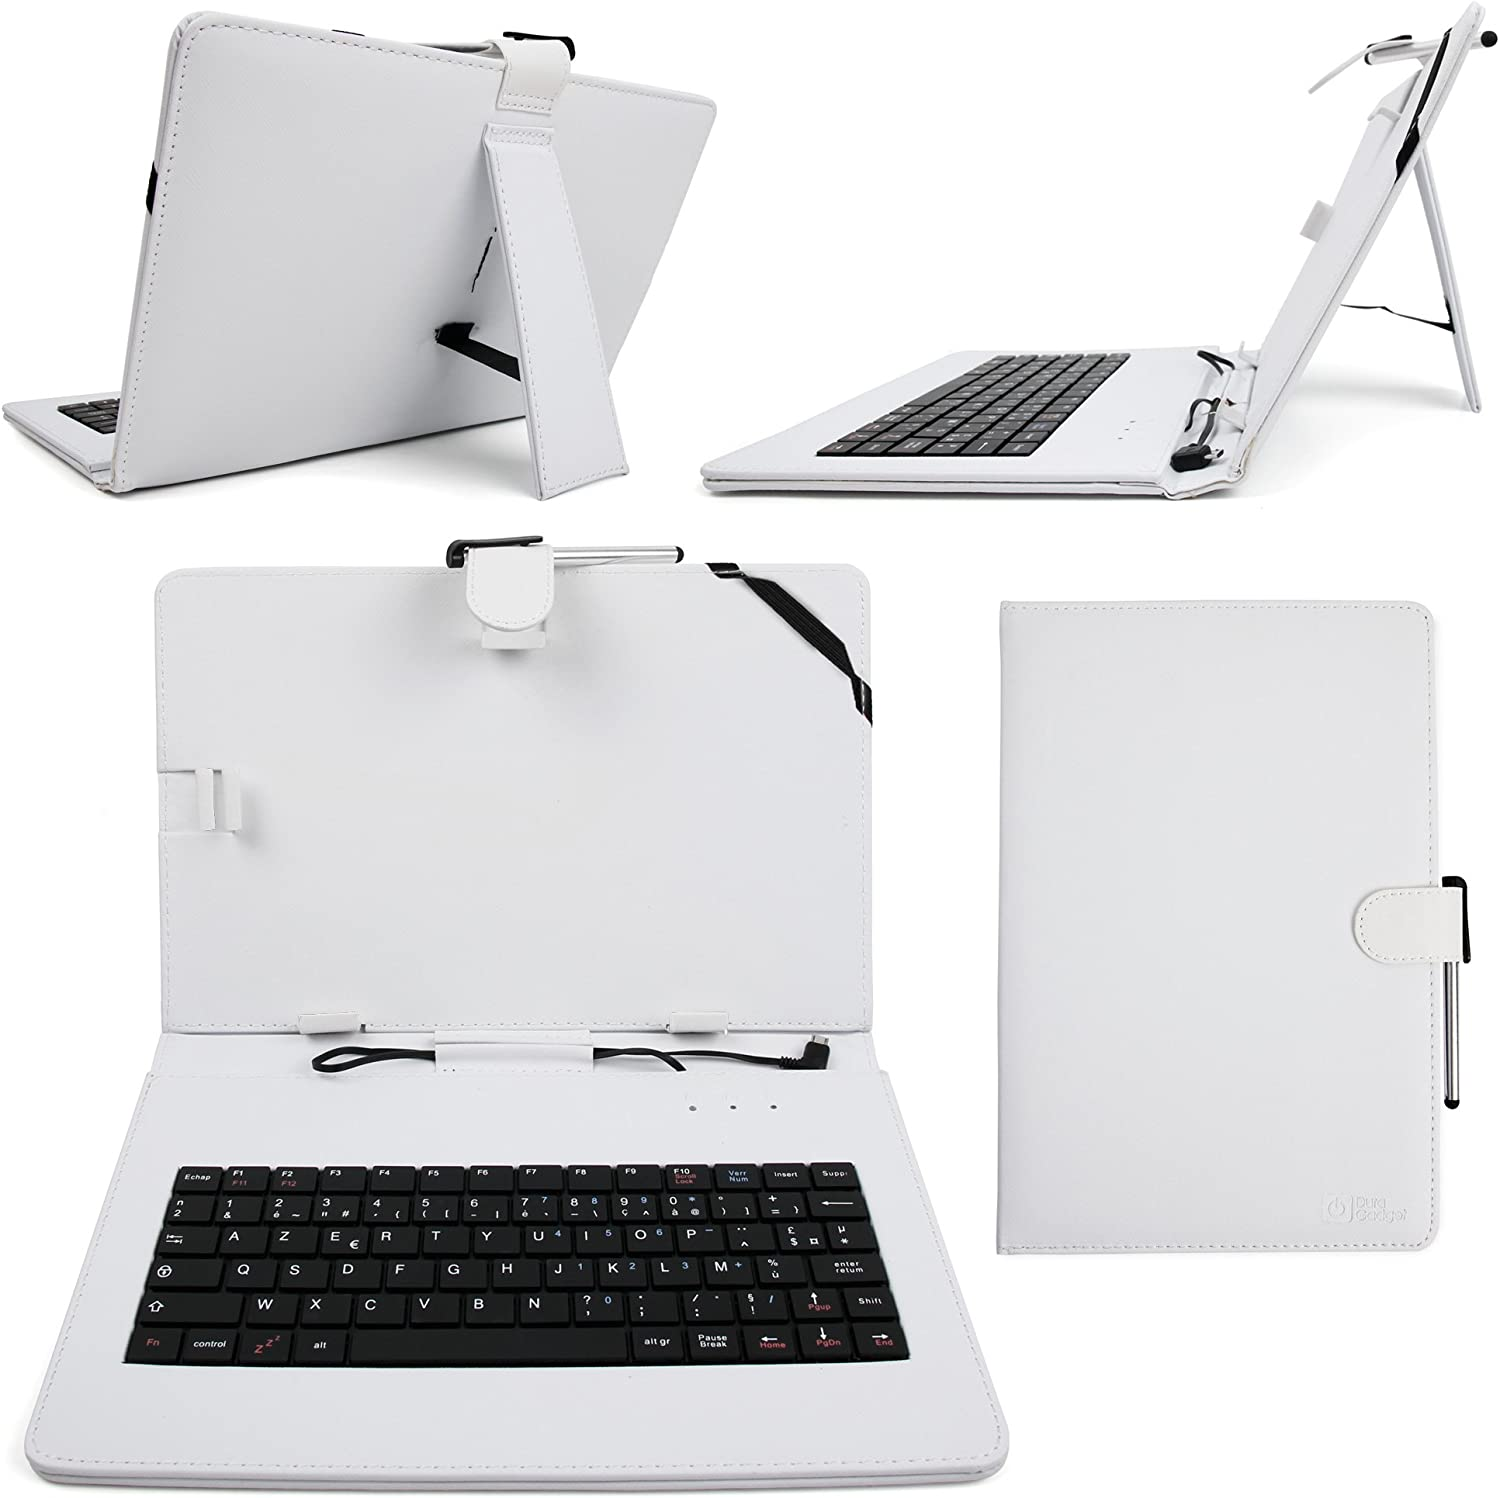 DURAGADGET French AZERTY White Faux-Leather Case w/Micro USB Keyboard - Compatible with Lenovo IdeaTab A10-70 Tablet + Cleaning Cloth